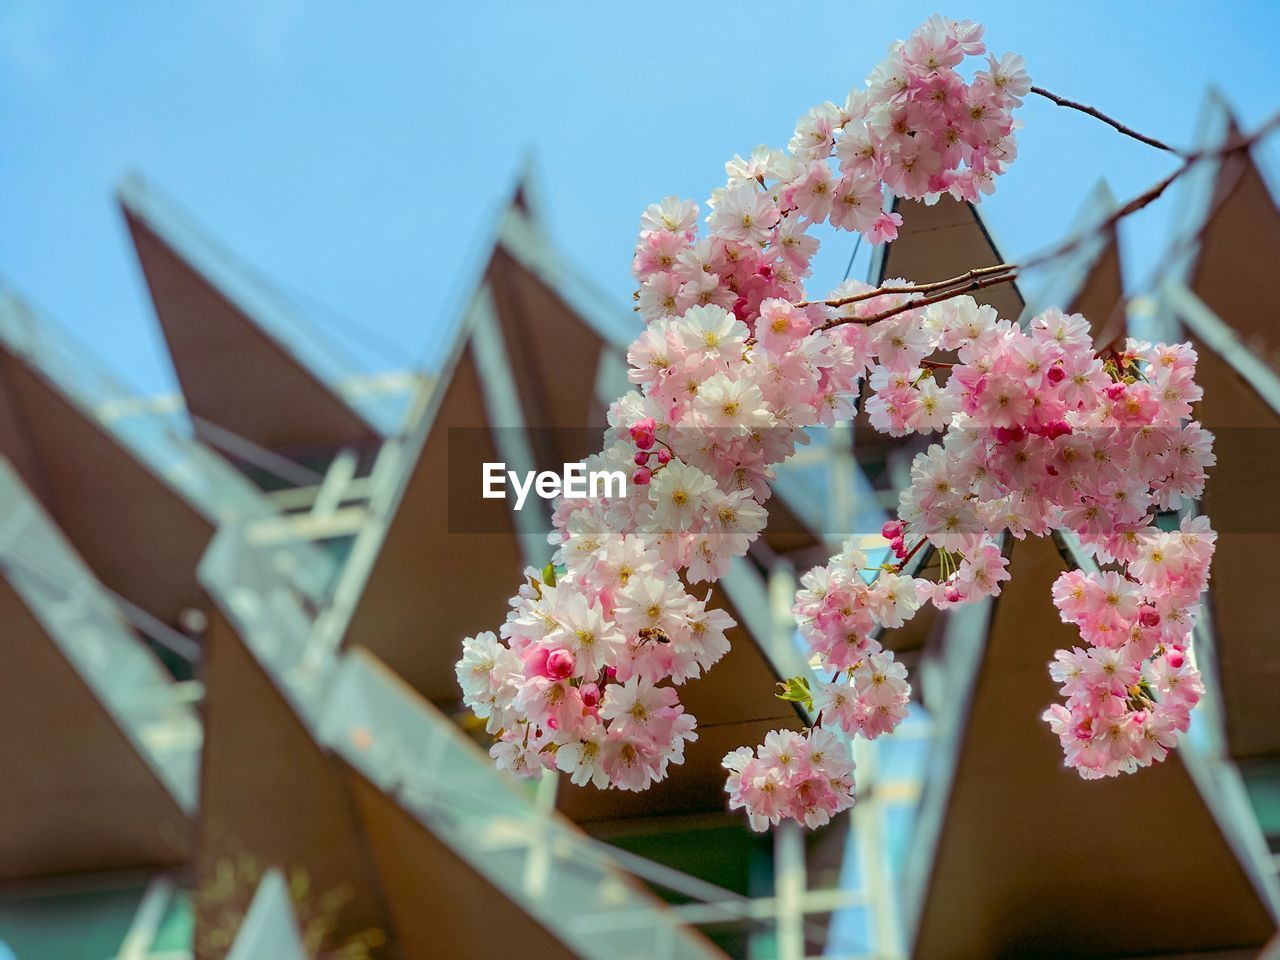 flowering plant, flower, plant, freshness, fragility, vulnerability, architecture, nature, built structure, no people, day, focus on foreground, building exterior, growth, pink color, building, beauty in nature, close-up, house, outdoors, flower head